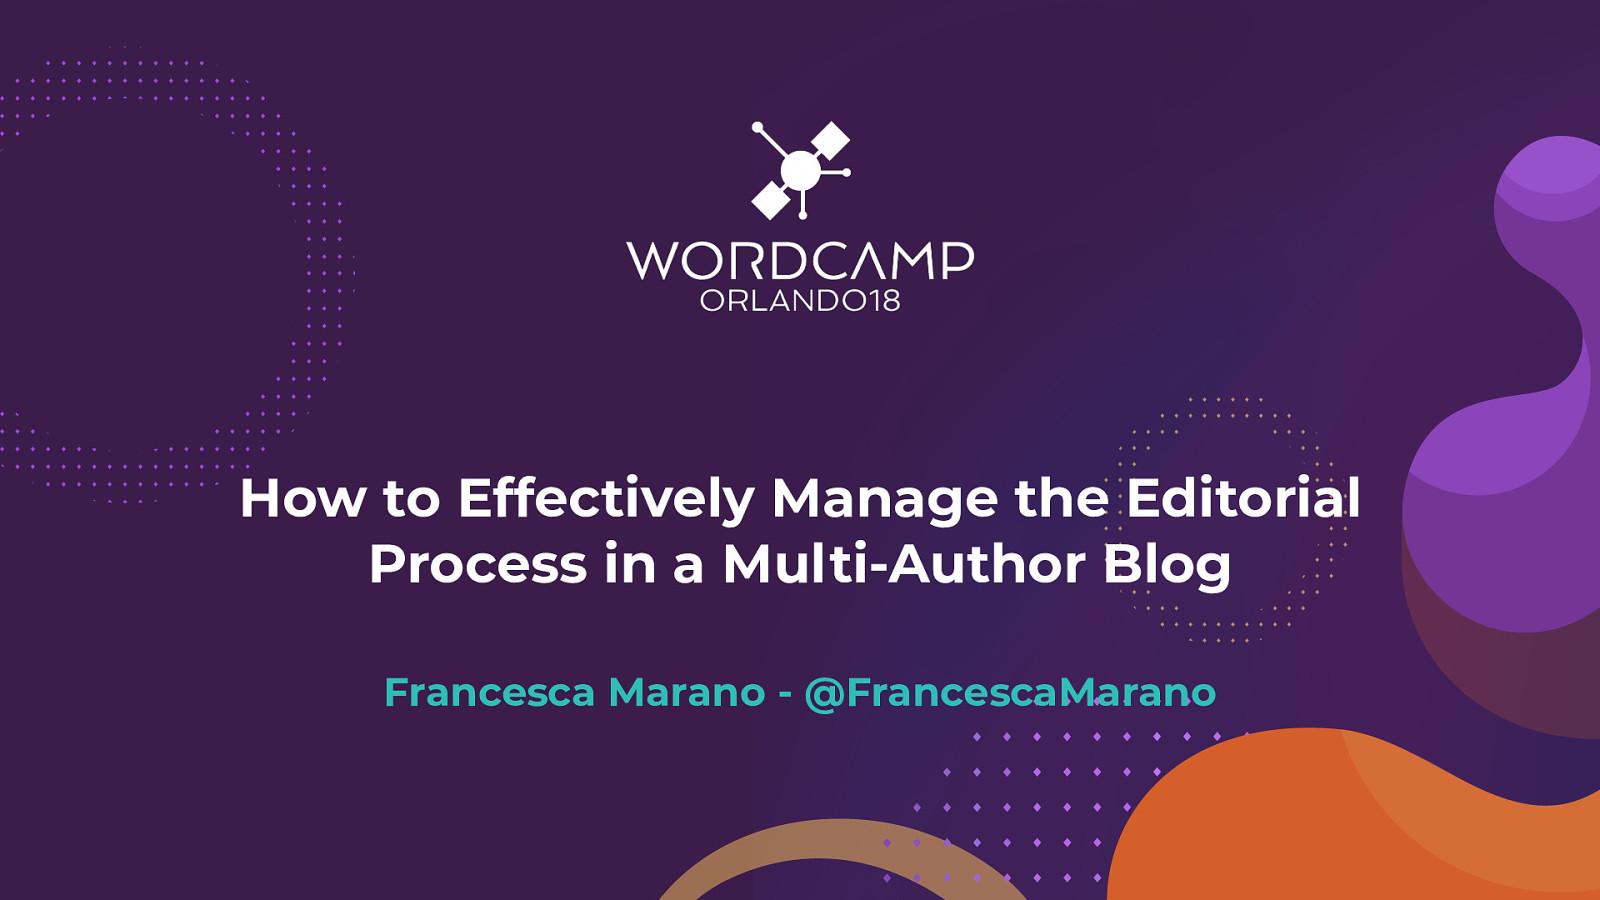 How to Effectively Manage the Editorial Process in a Multi-Author Blog by Francesca Marano